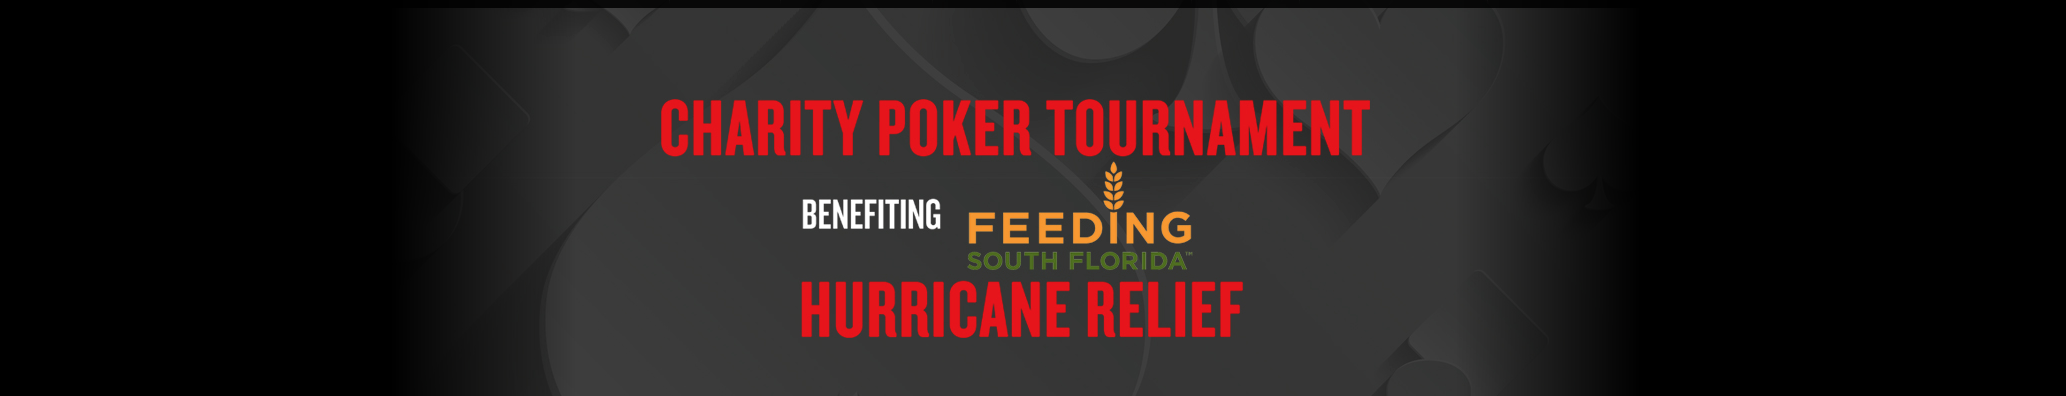 Seminole Hard Rock Hotel & Casino Presents Charity Poker Tournament to Benefit Feeding South Florida's Hurricane Relief Efforts In Association with PokerStars